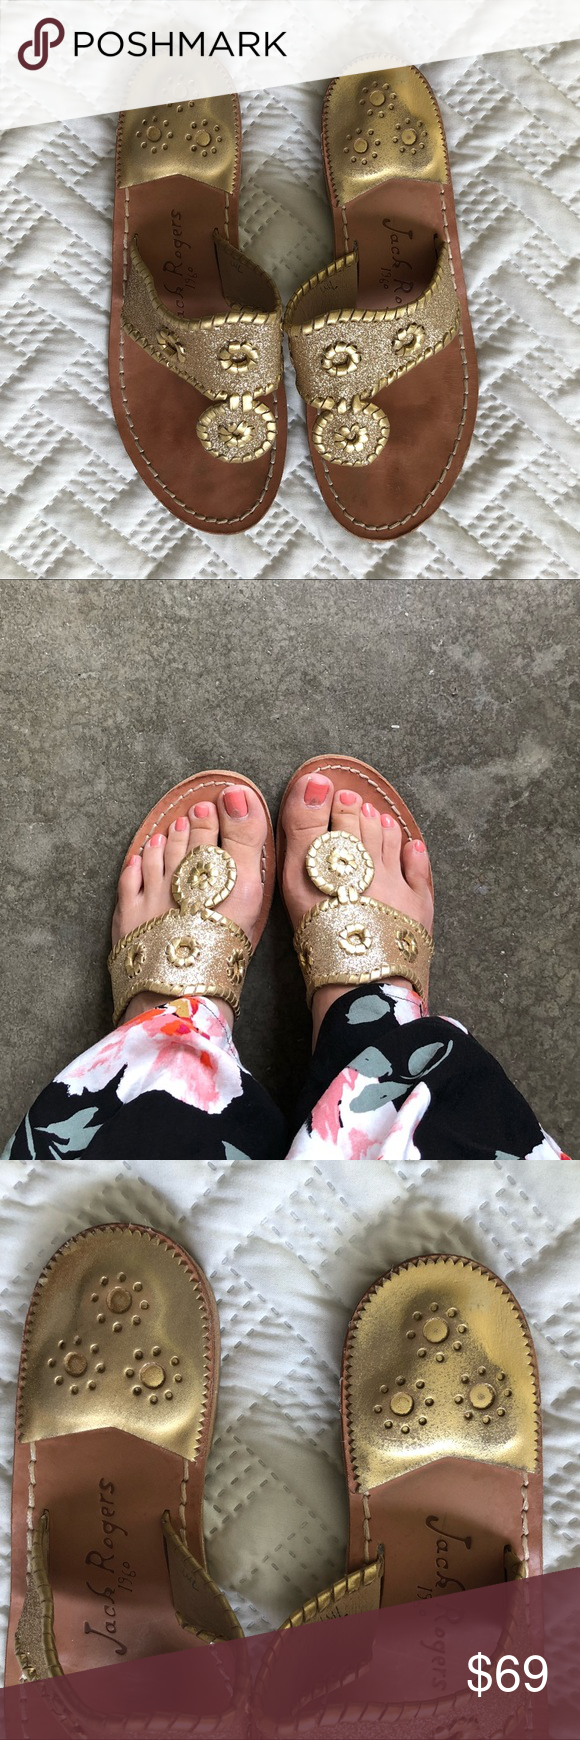 Jack Rogers Gold Glitter Cleo Sandals (With images) Jack